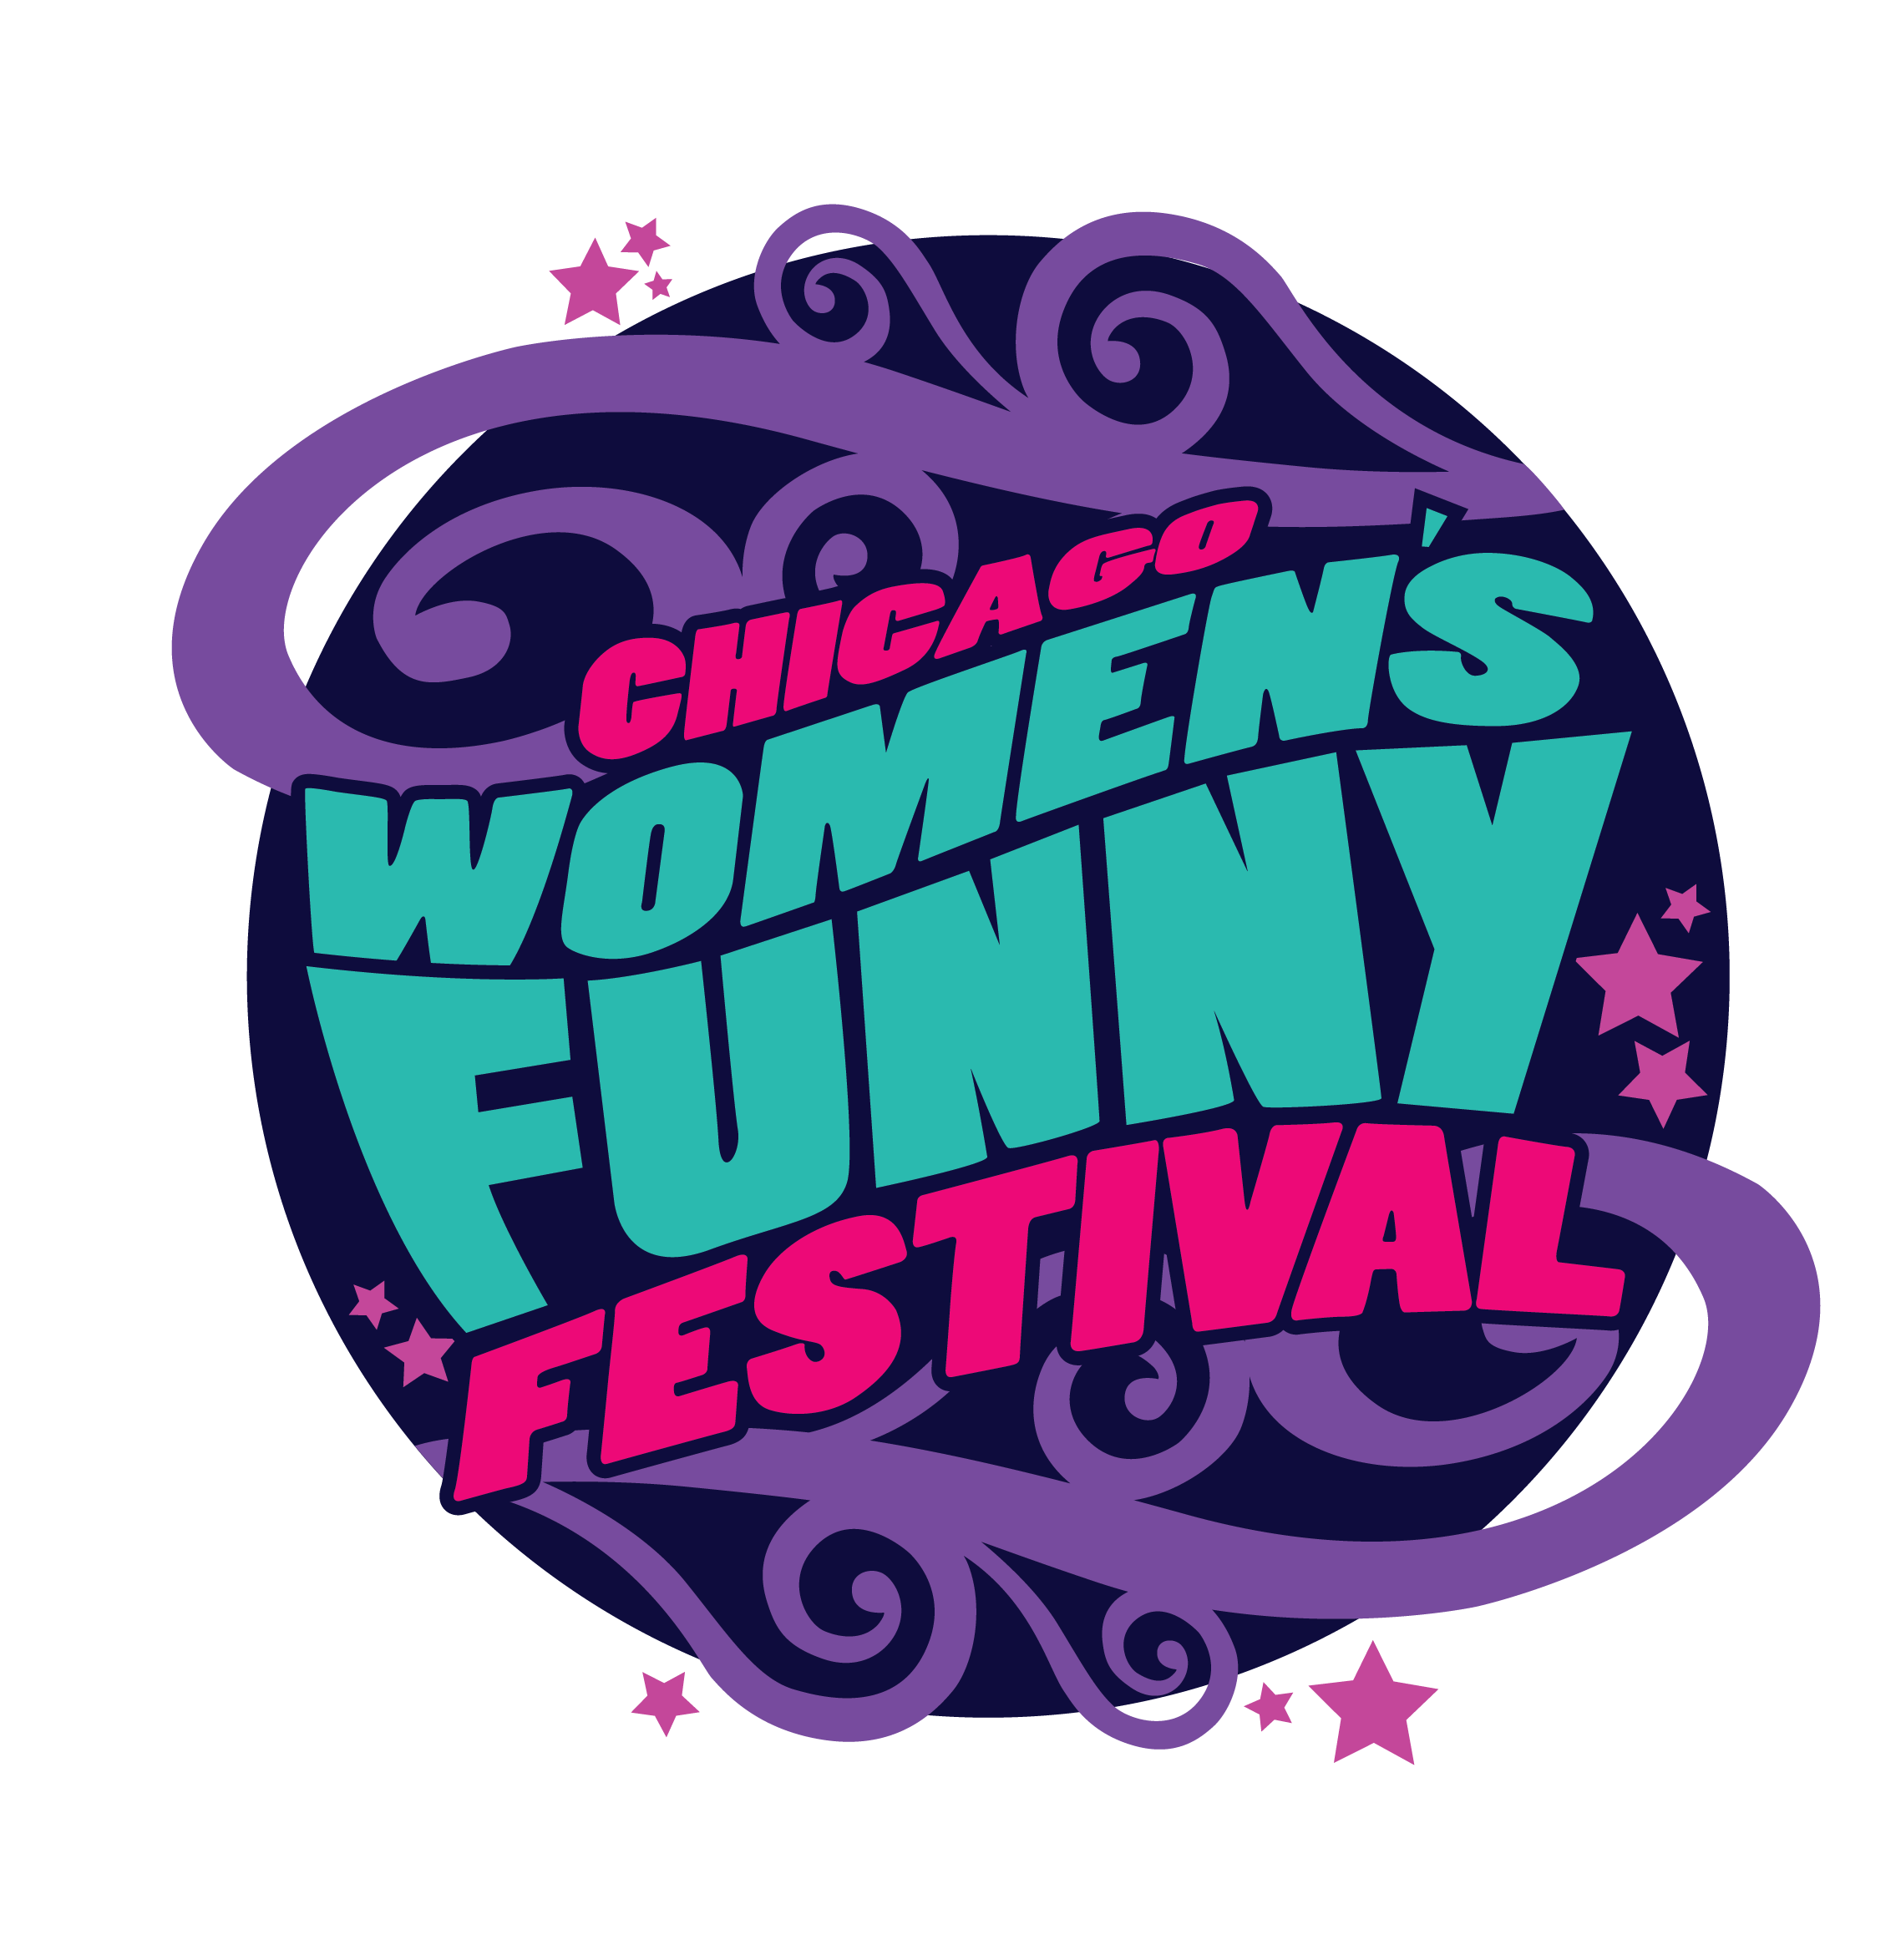 CWFF_withdate.png